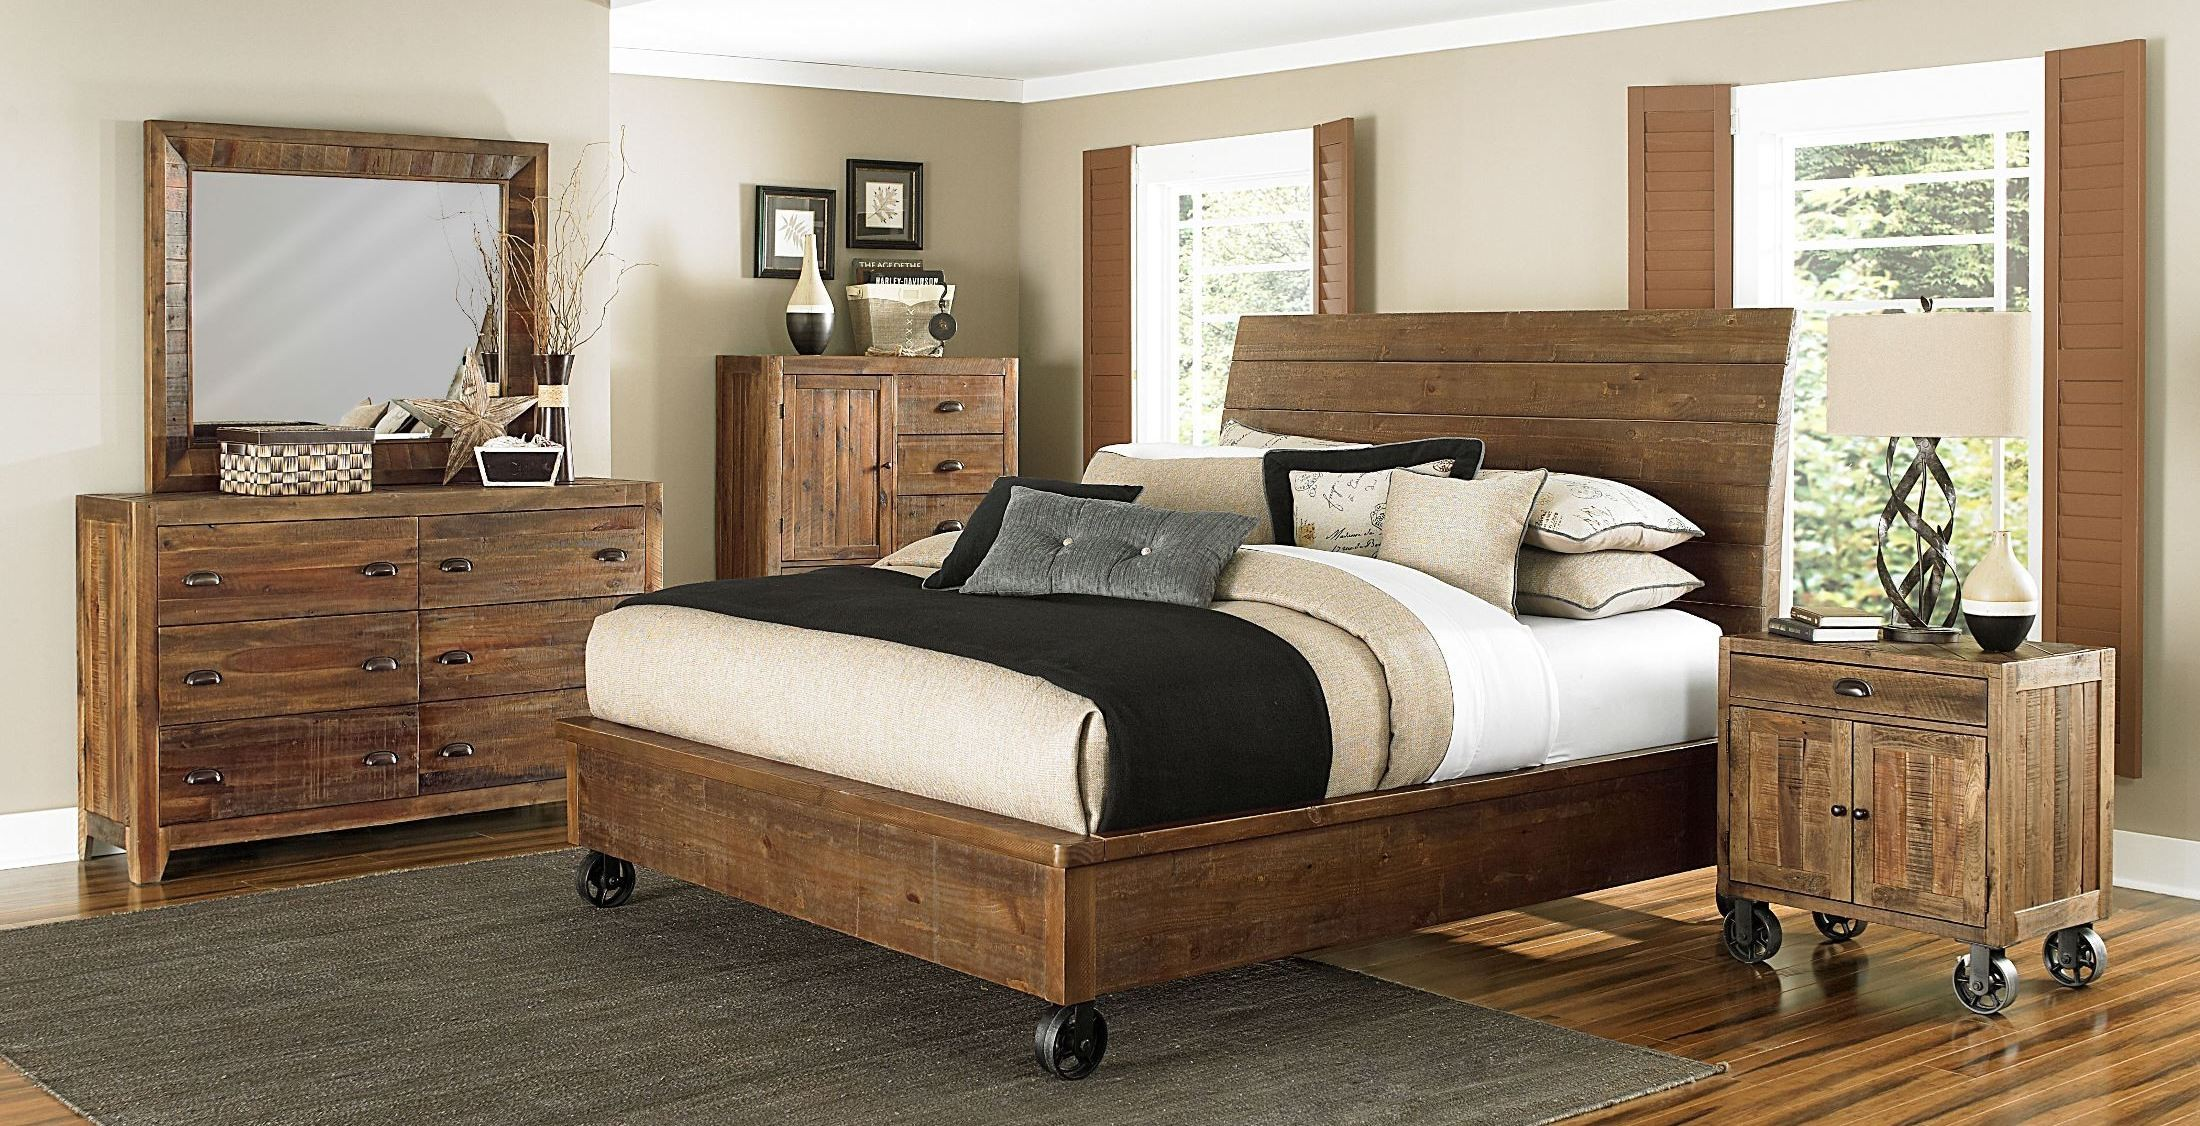 river ridge island bedroom set with casters from magnussen